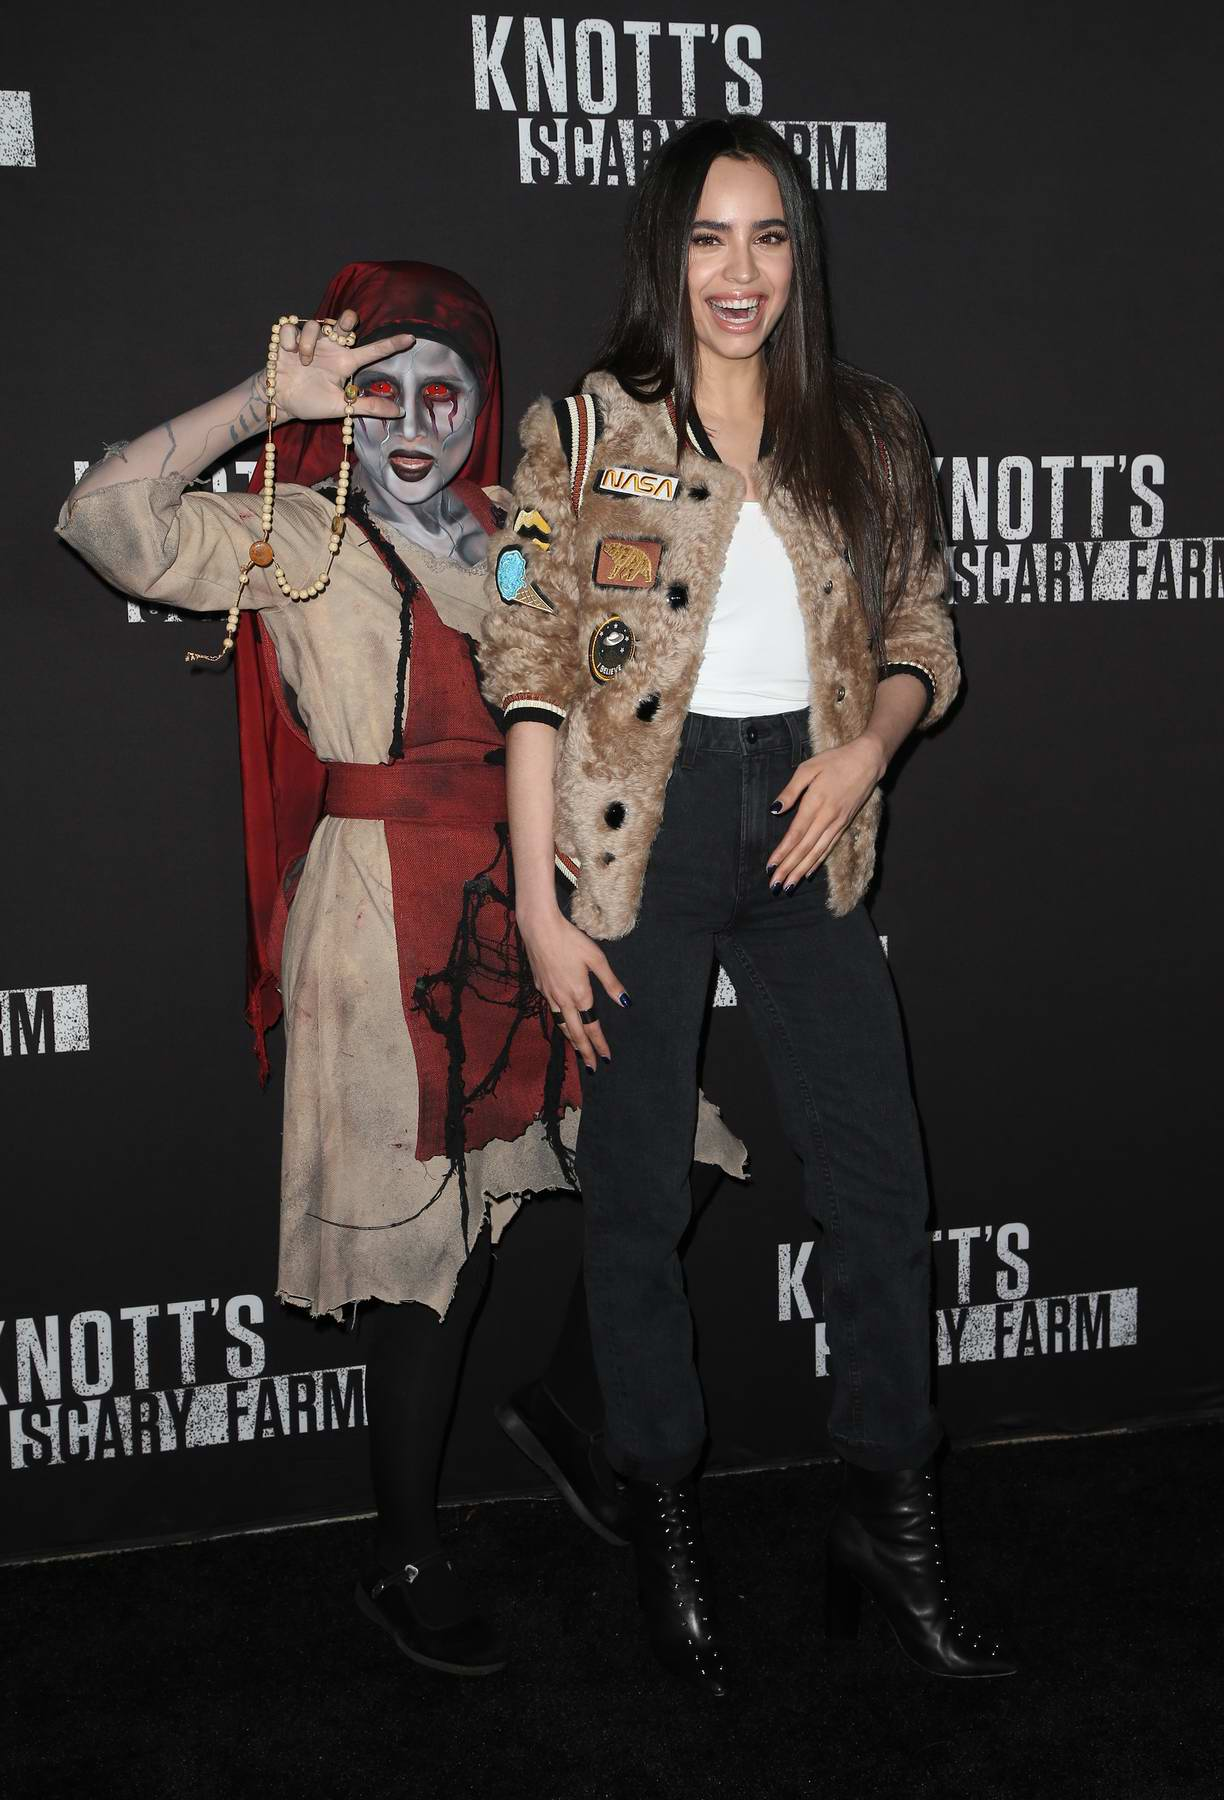 Sofia Carson at Knott's Scary Farm Celebrity Night in Buena Park, California